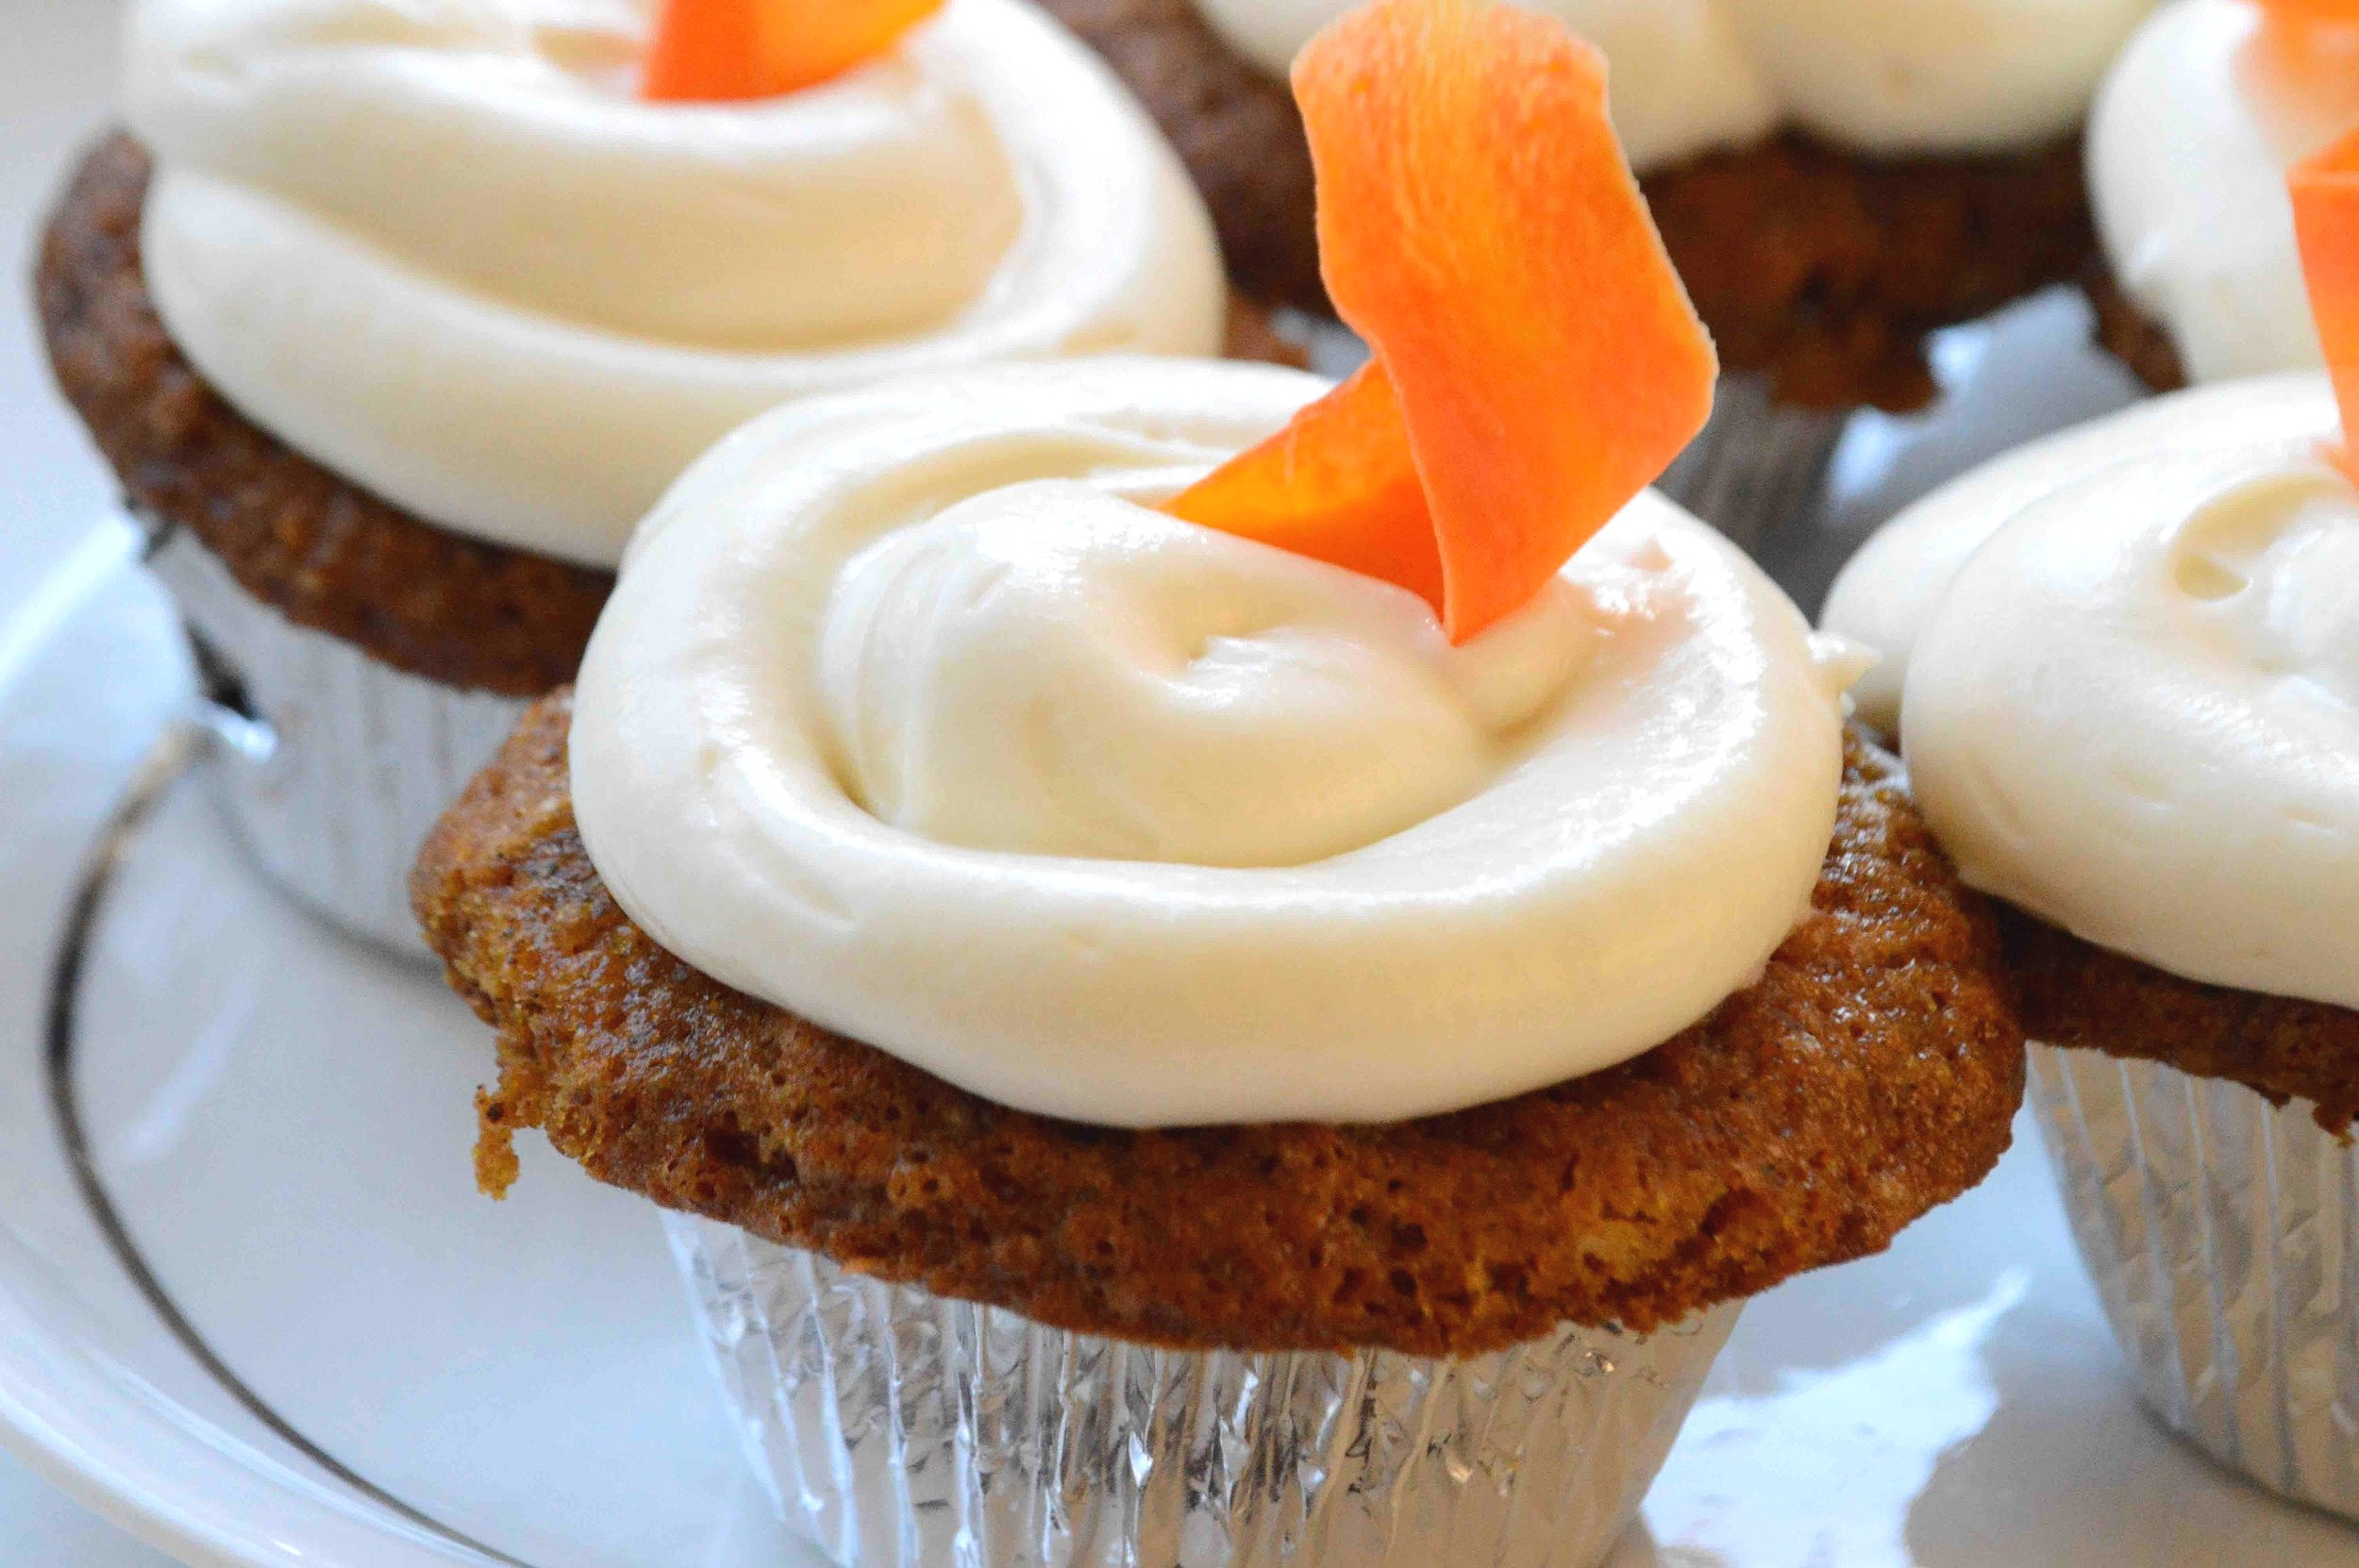 Carrot+Cake+Cupcakes+with+Cream+Cheese+Frosting+and+Candied+Carrot+Curls